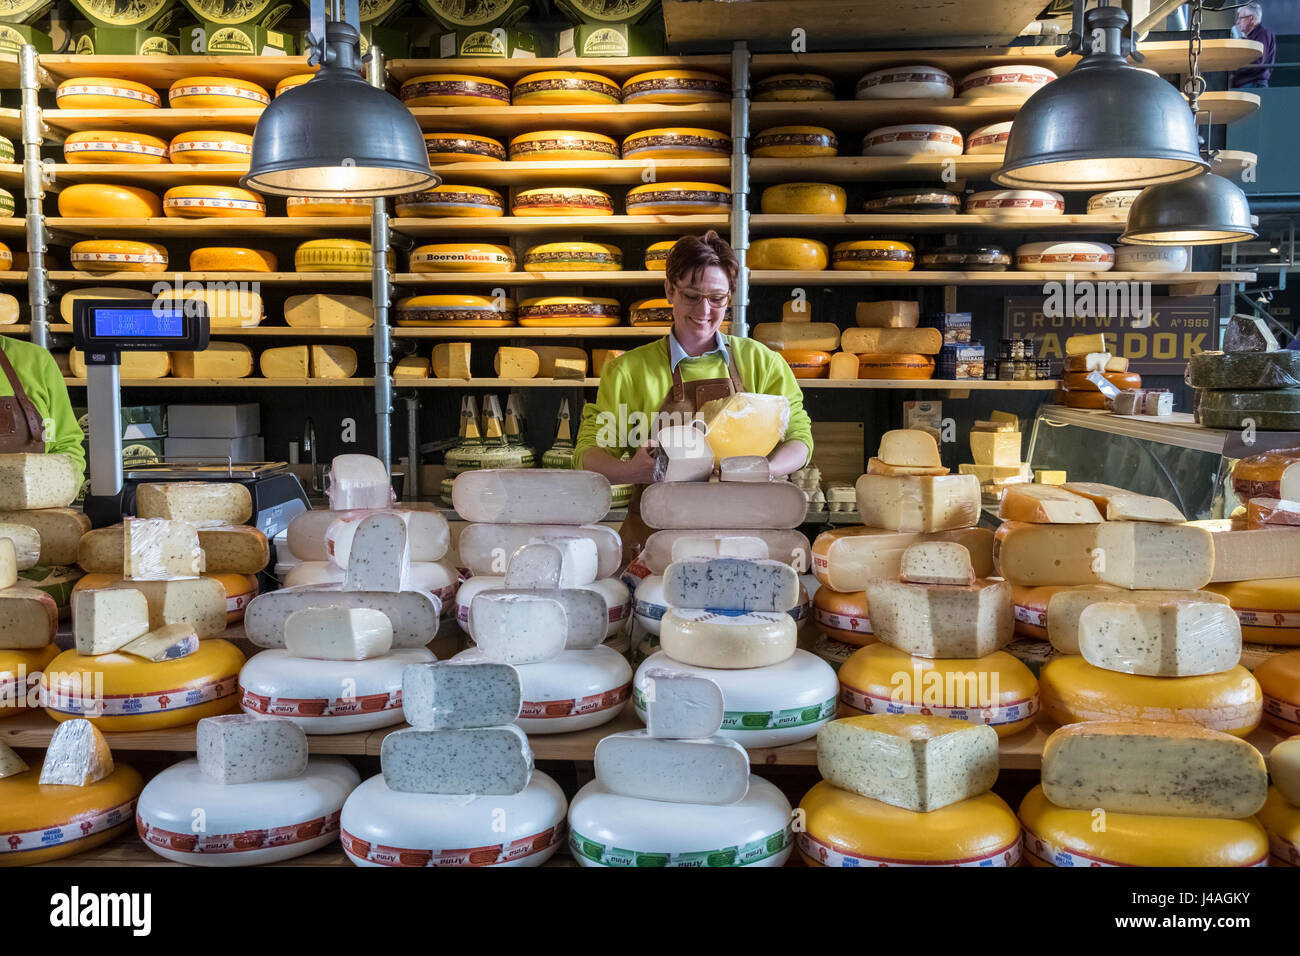 Cheese seller inside Markthal food market, Nieuwstraat, Rotterdam, The Netherlands - Stock Image